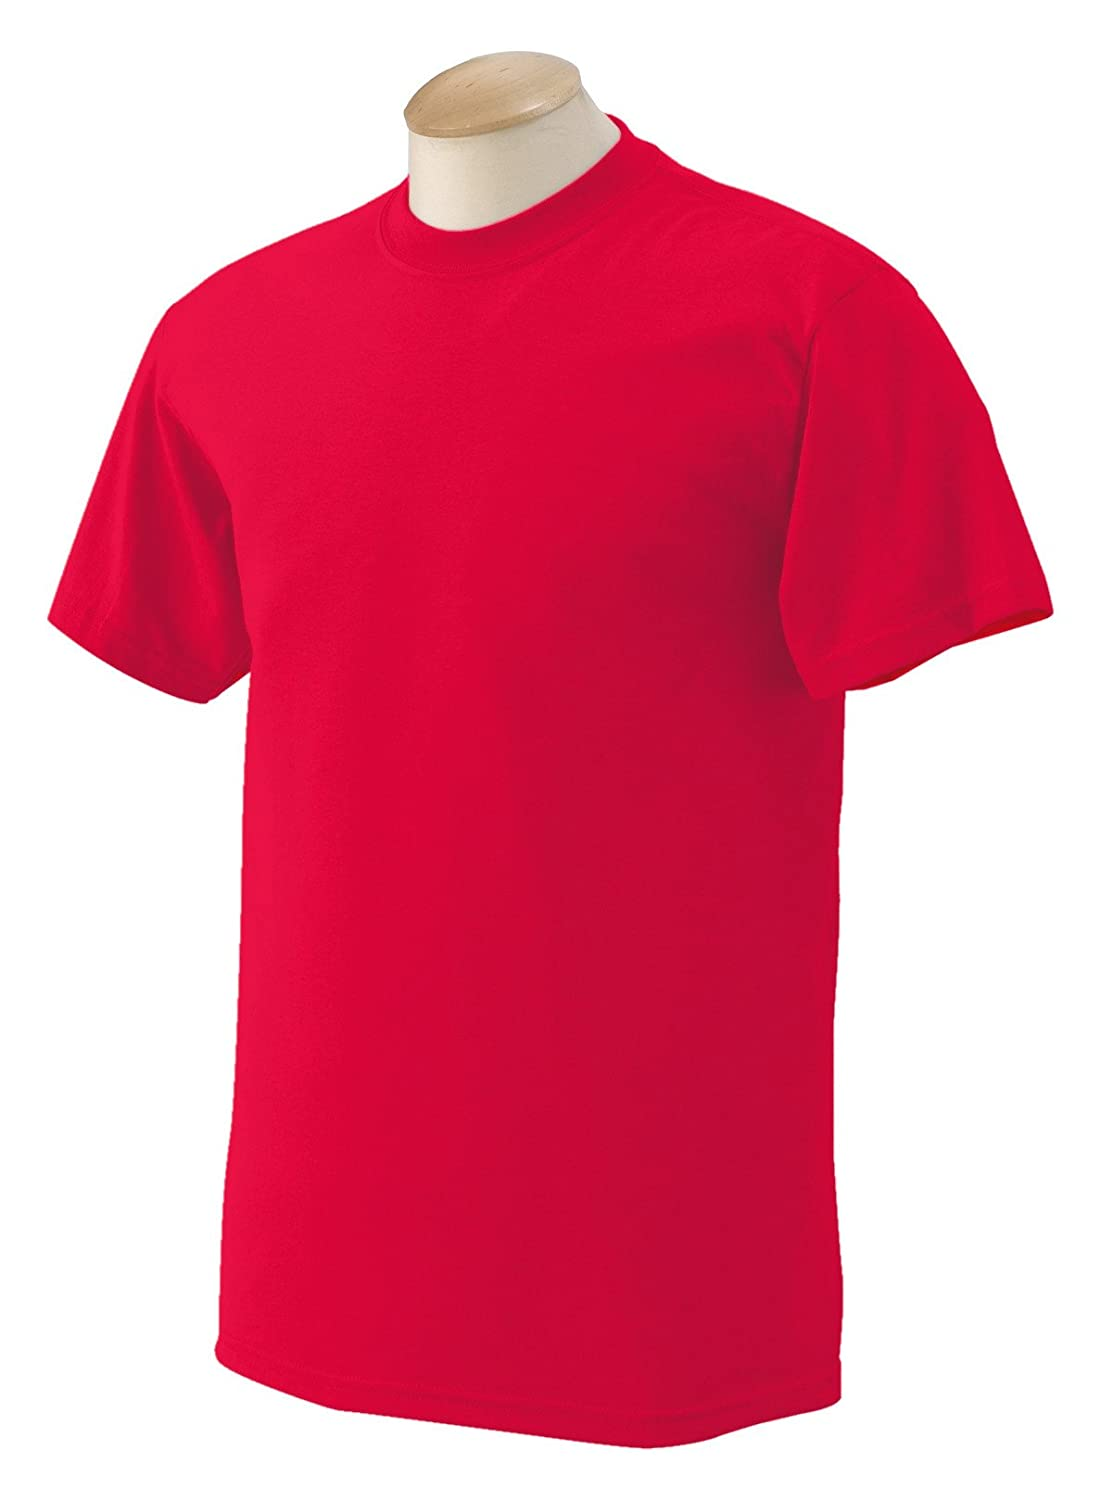 50/50 Ultra Blend Tee Shirt, Color: Red, Size: XX-Large